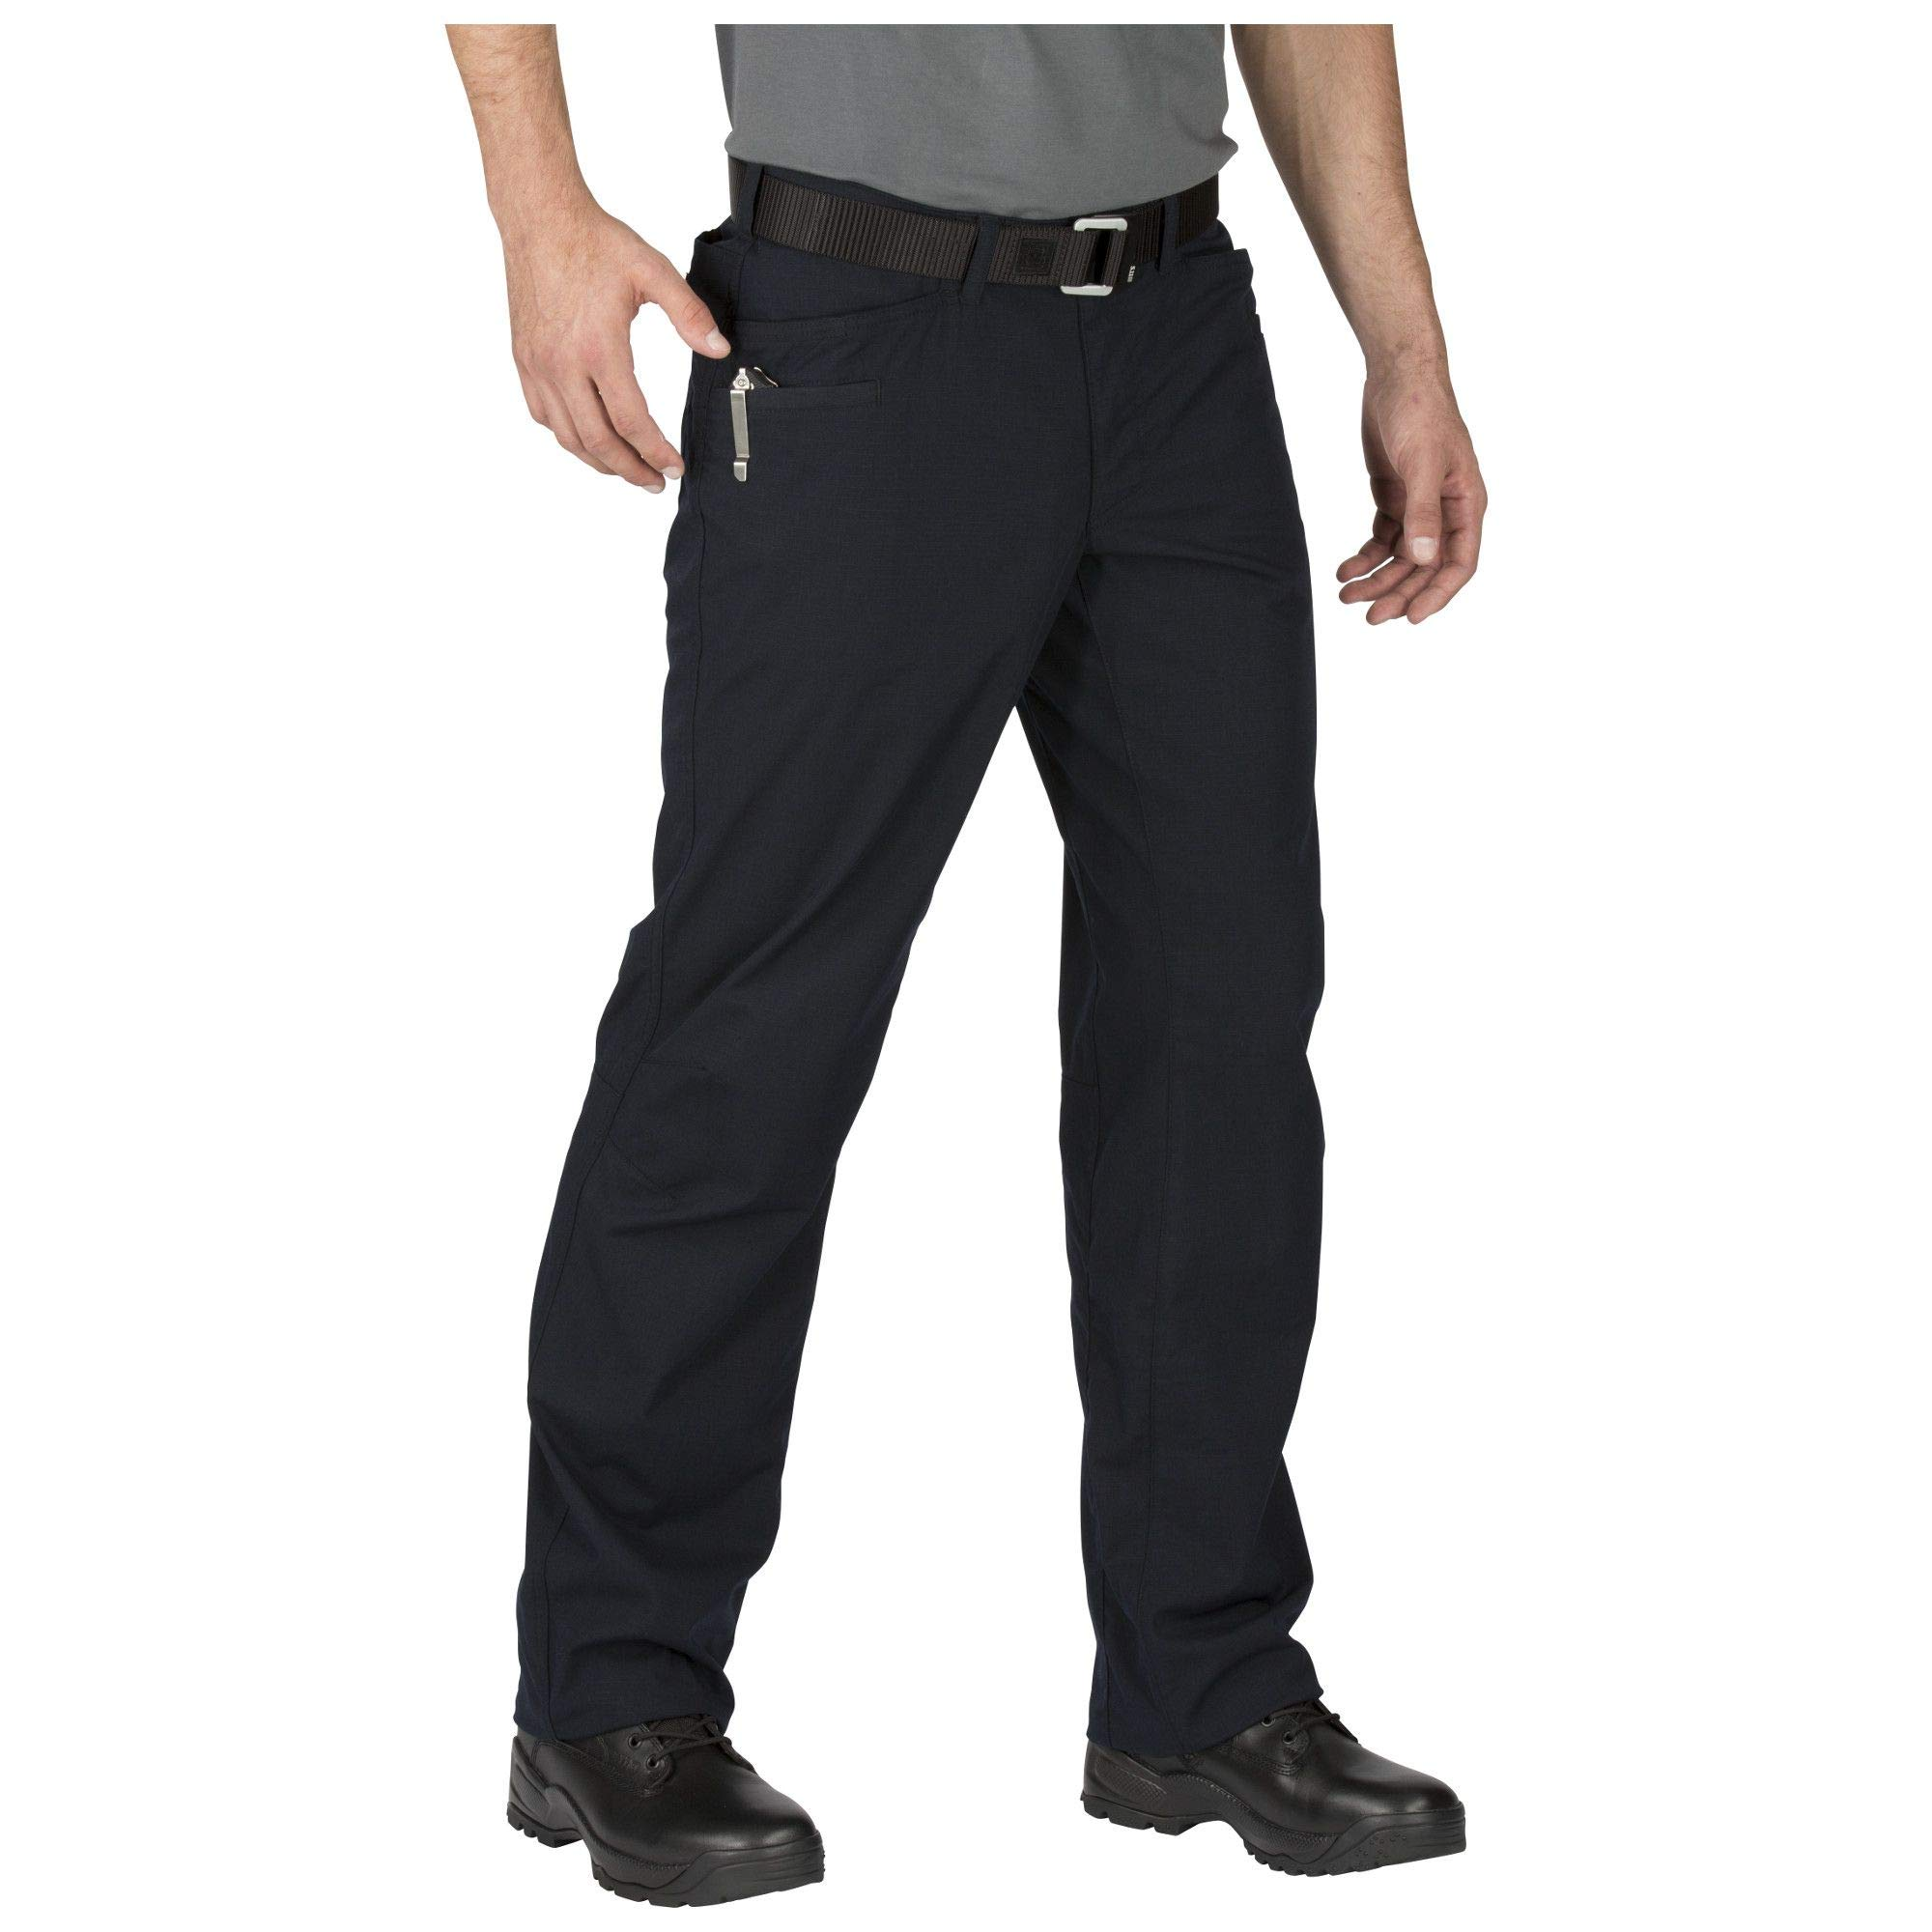 5.11 Tactical Men's Ridgeline Covert Work Pants, Teflon Finish, Poly-Cotton Ripstop Fabric, Dark Navy, Style 74411 by 5.11